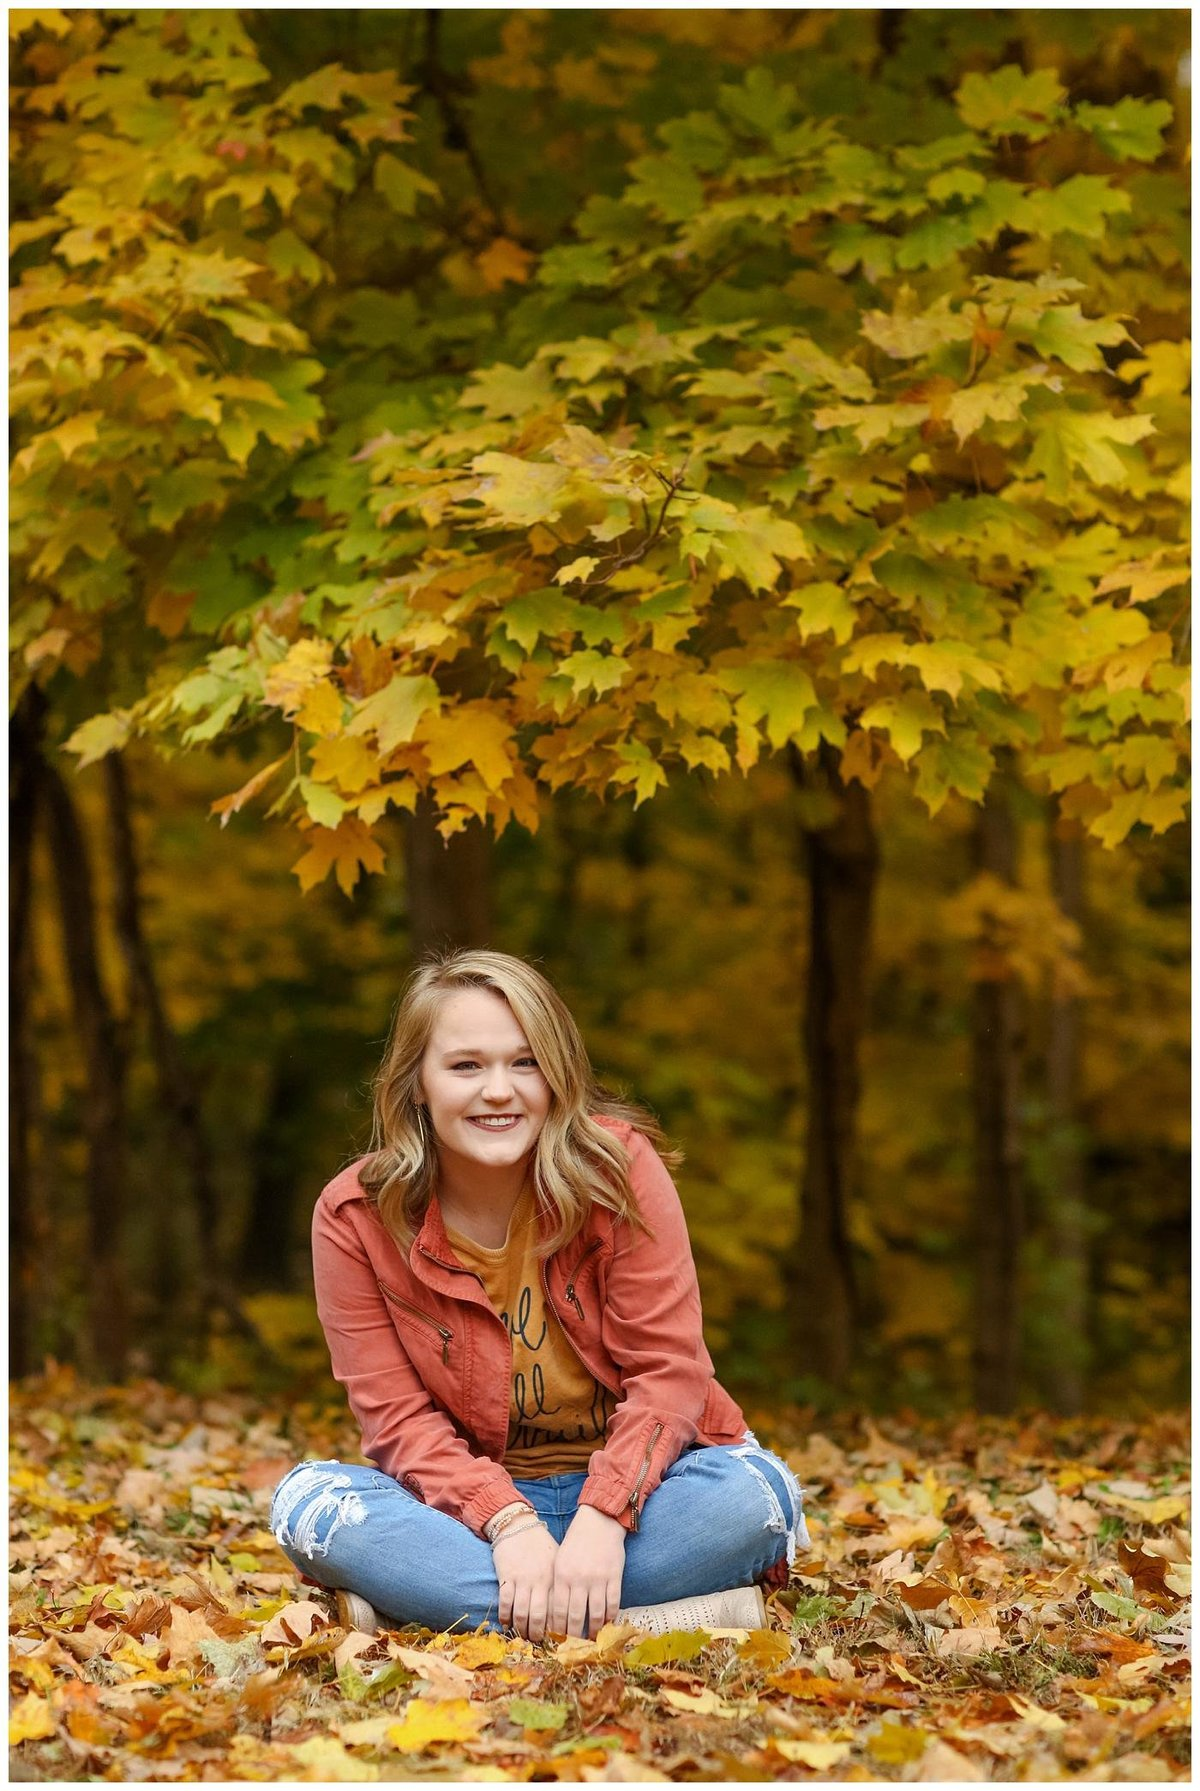 Central Illinois Senior Photographer | Macomb, IL Senior Photographer |  Creative Touch Photography_4852